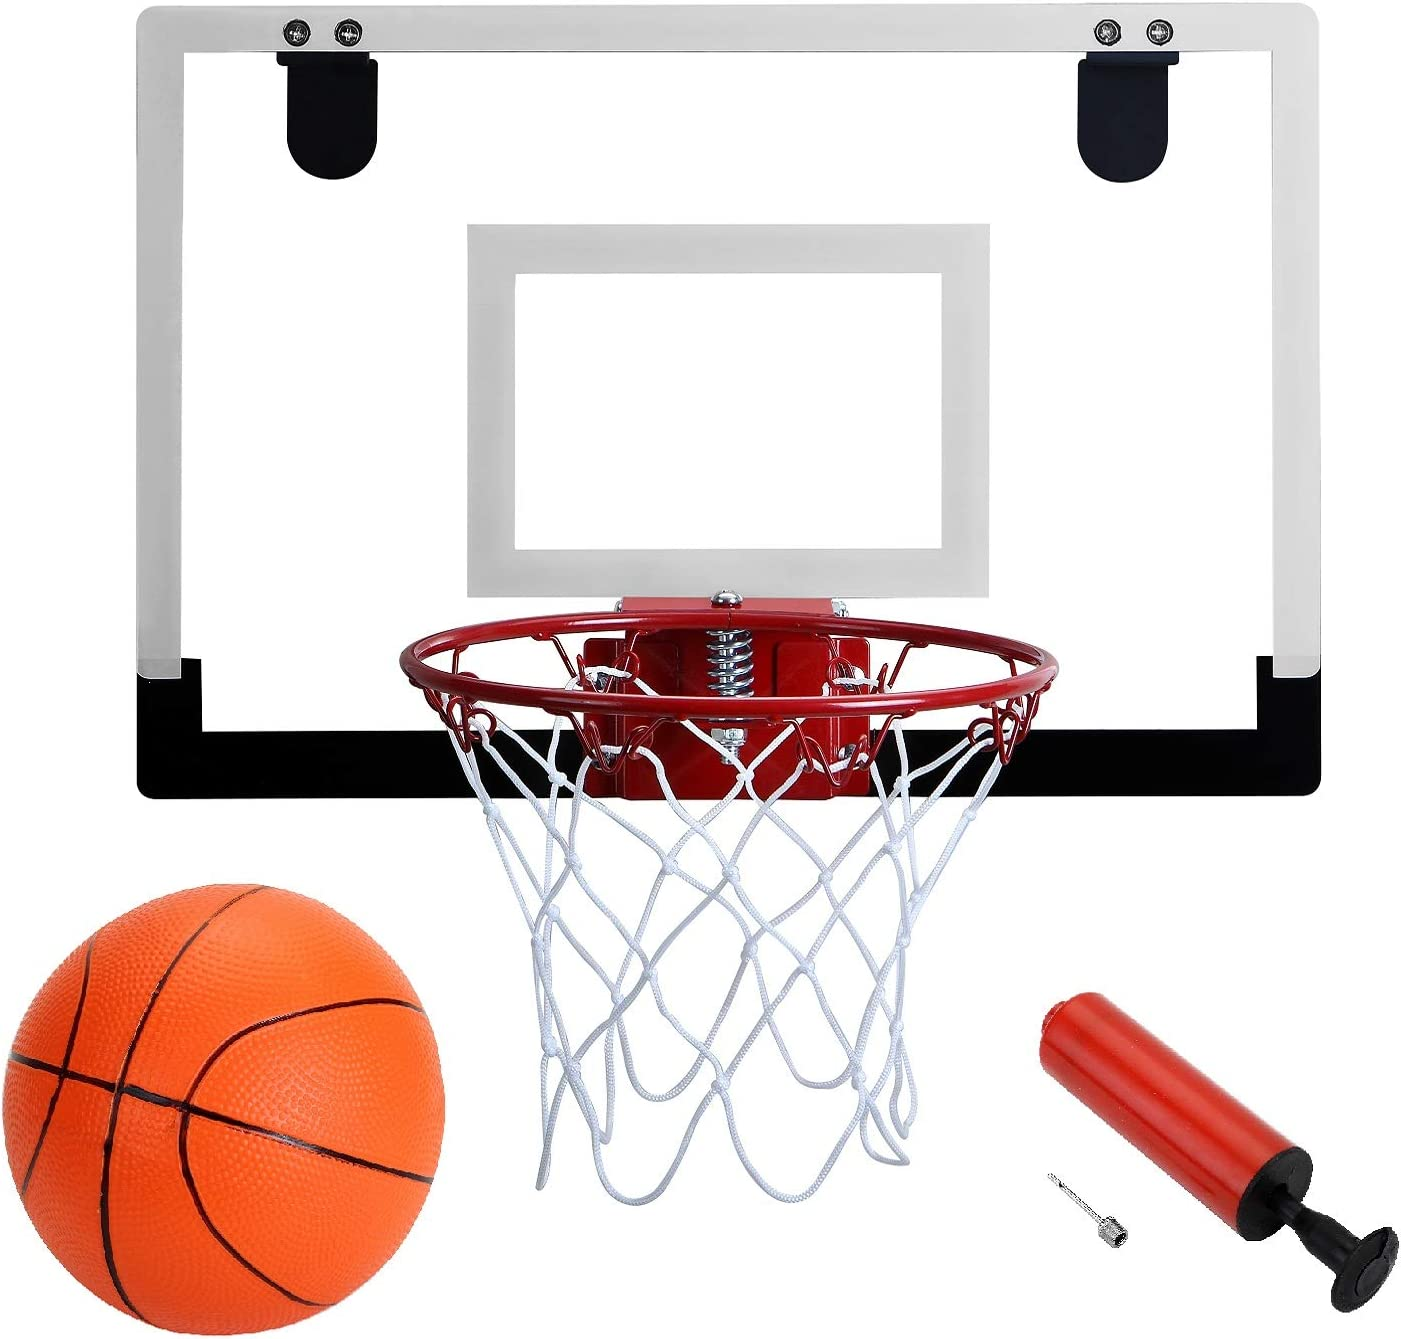 Amazon Com Door Hanging Mini Basketball Hoop Win Sports With Breakaway Steel Rim Includes 5 Mini Basketballs And Hand Pump With Needle 18x12 Inches Sports Outdoors